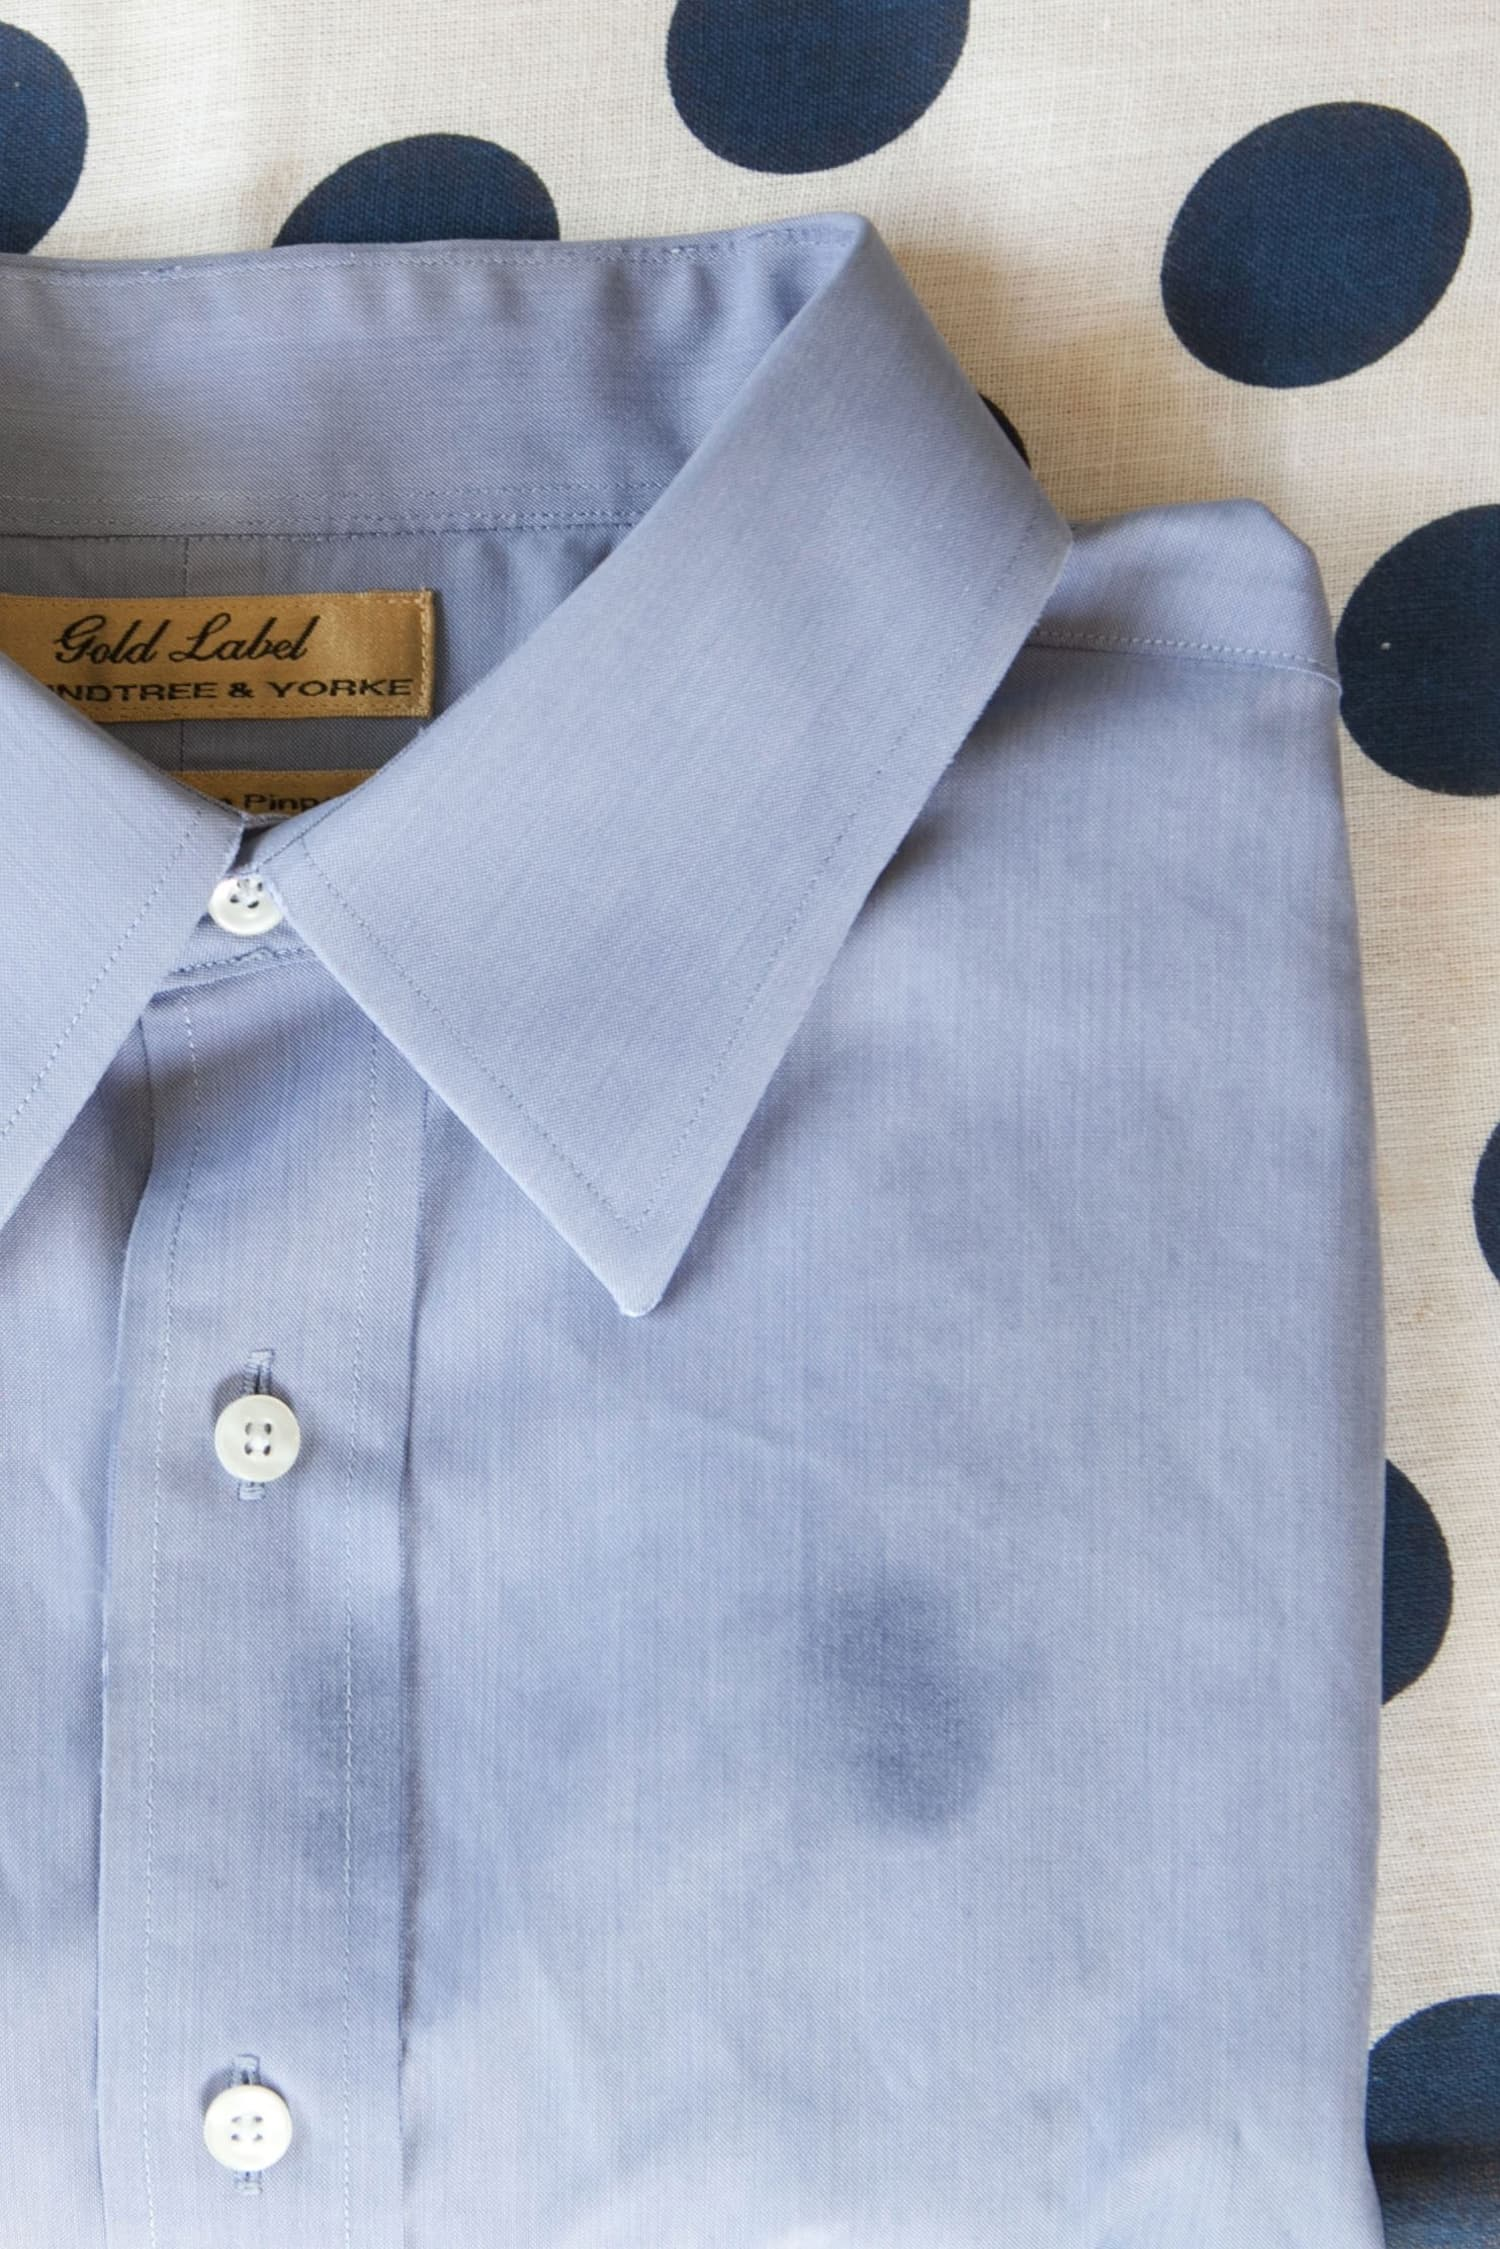 How To Get Grease Stains Out Of Clothes 3 Easy Methods Kitchn